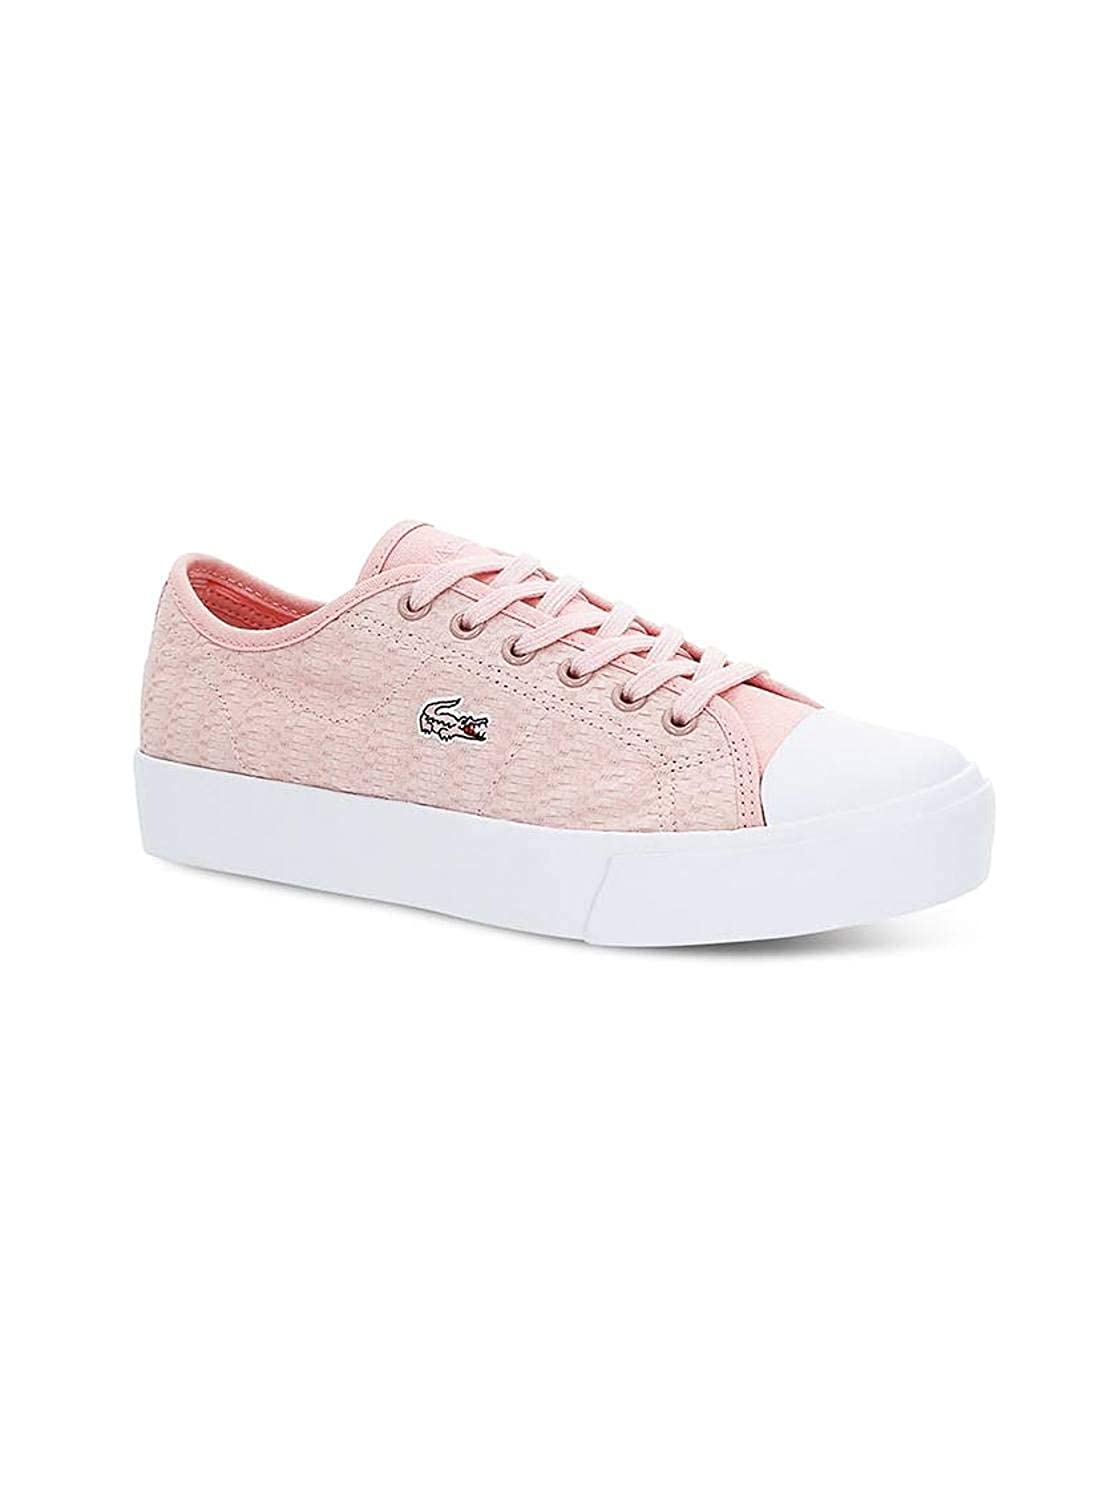 Lacoste Ziane Plus Grand 119 2 Rosa 37CFA0054 Damen Turnschuhe